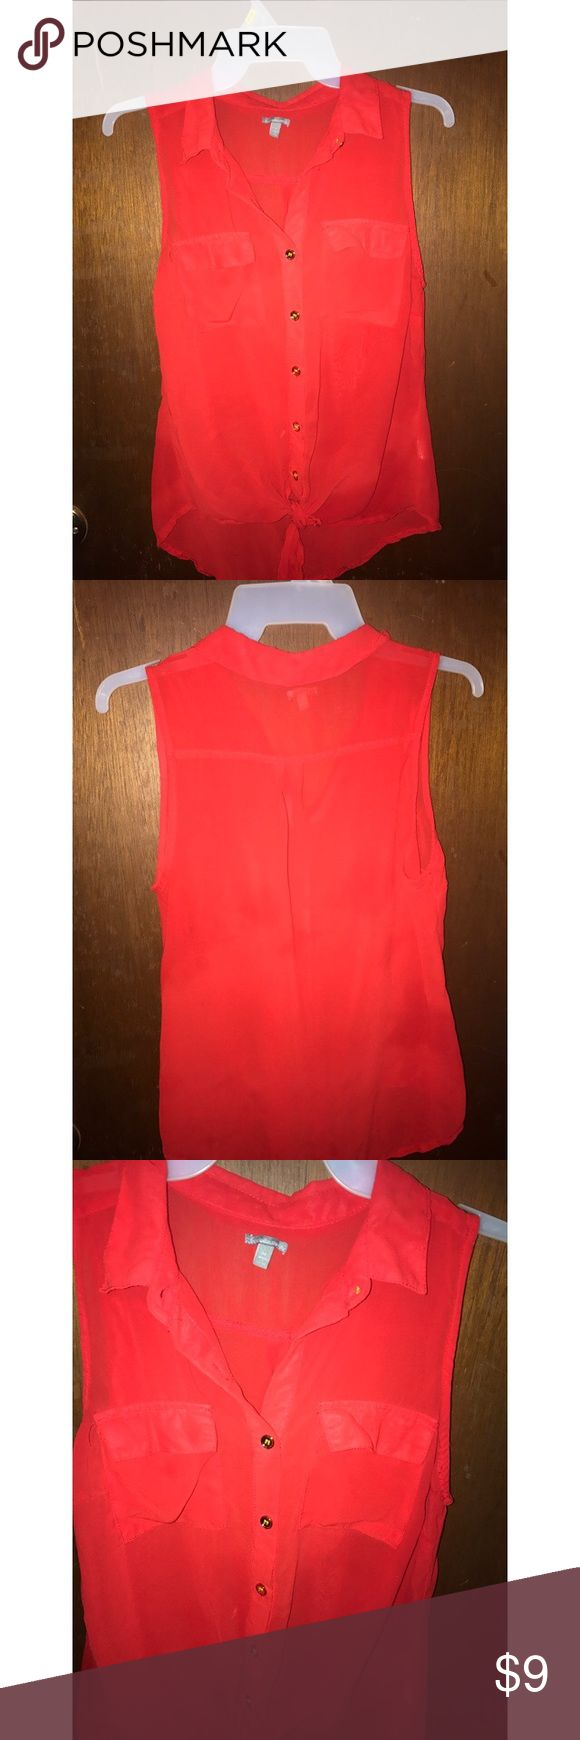 Red collar button down tank top Very classy red button down Charlotte Russe tank top. Gold buttons, two pockets on the front, and also ties at the bottom. Was given it from a friend but it doesn't fit me. No stains, rips, or tears, basically brand new! ❤️ Charlotte Russe Tops Tank Tops